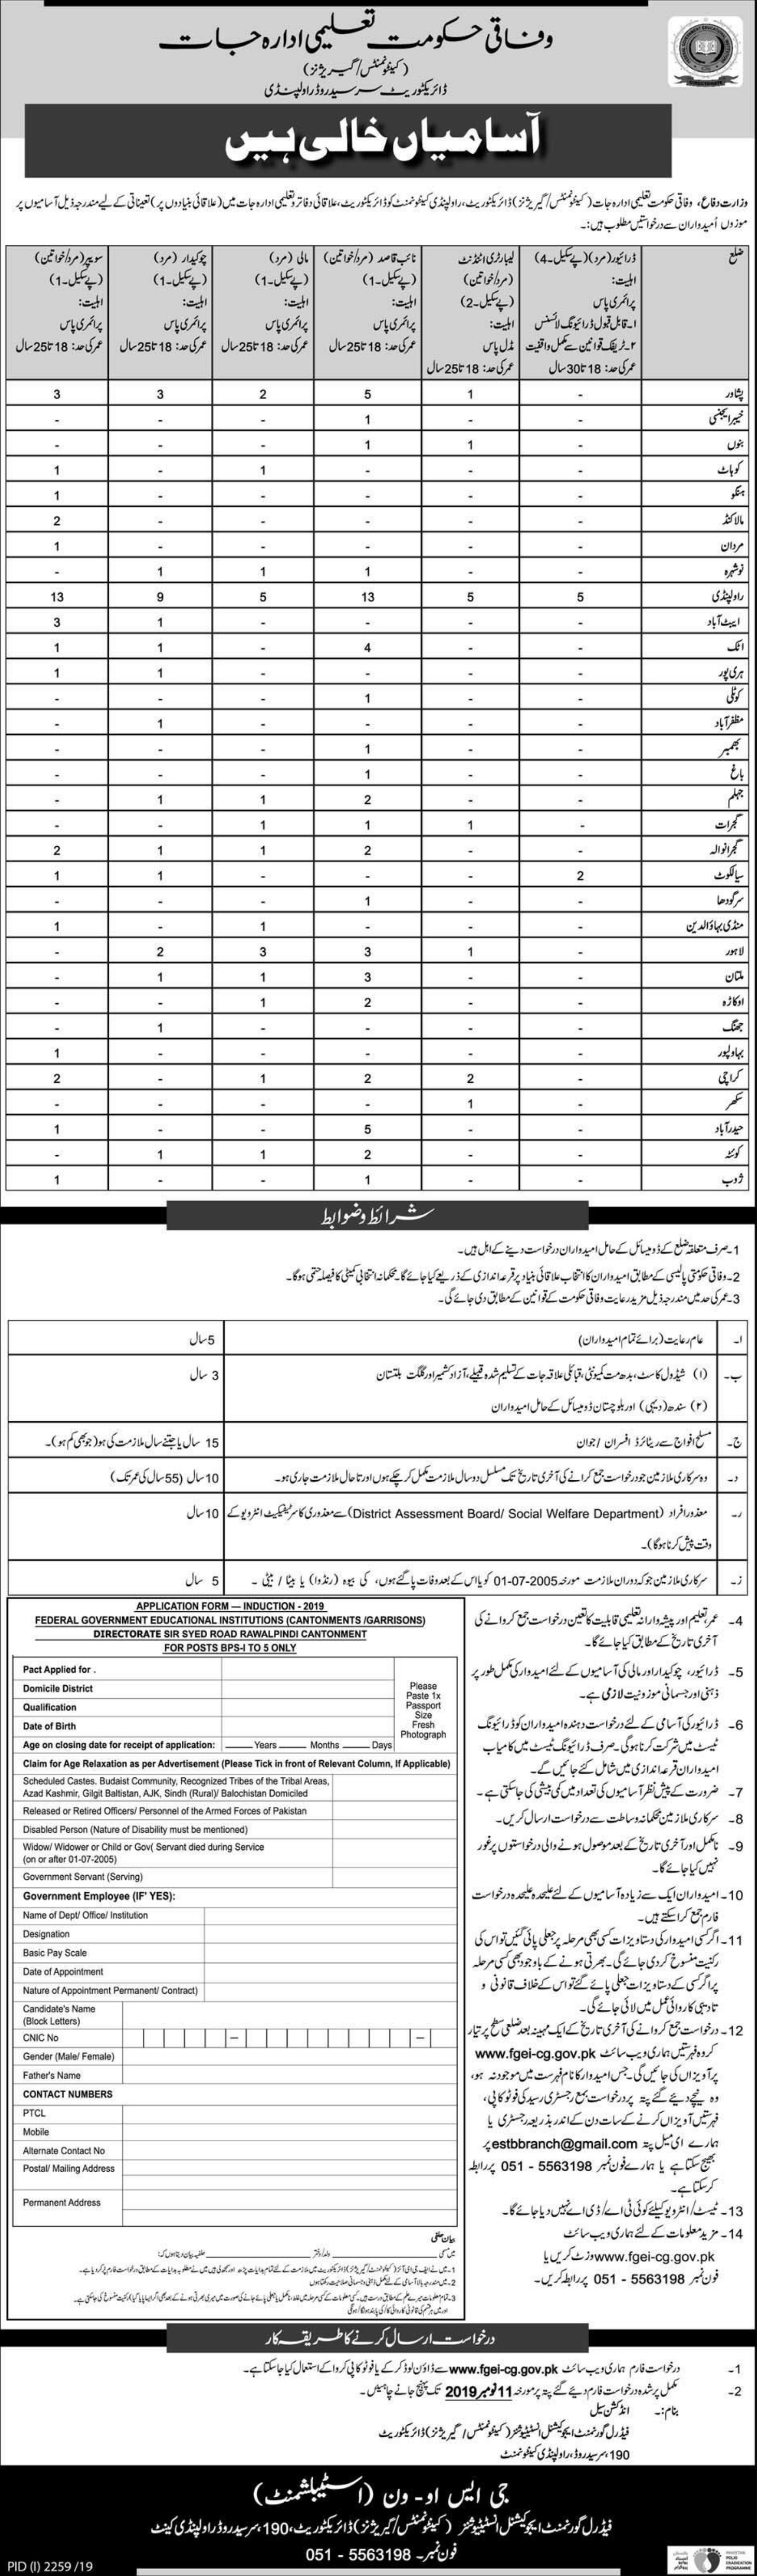 Federal Government Educational Institutions FGEI Jobs 2019 Pakistan